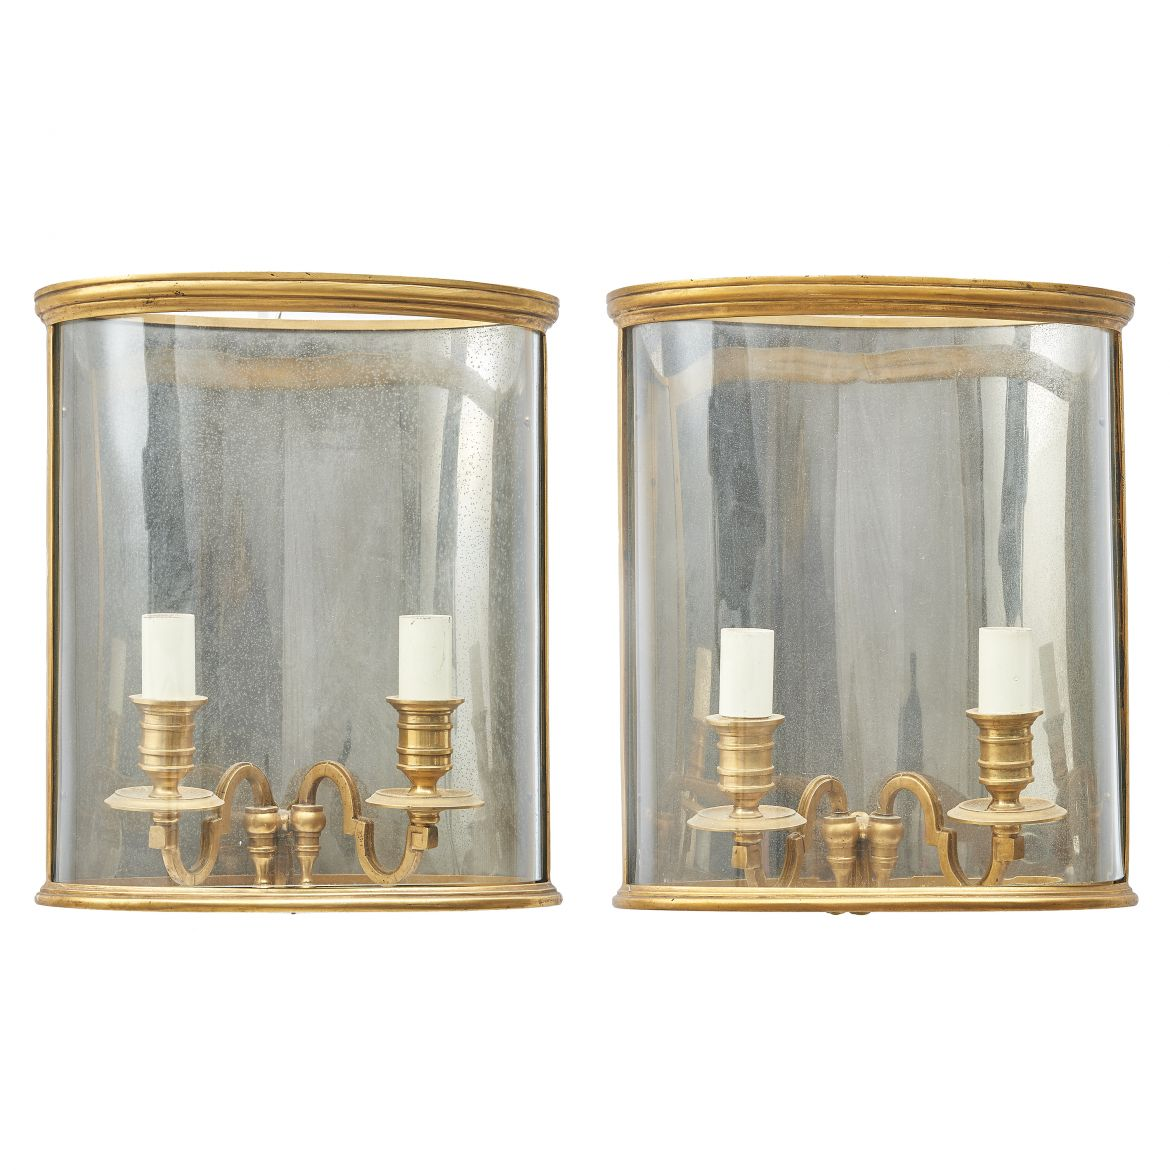 French Bronze Oval Wall Lanterns